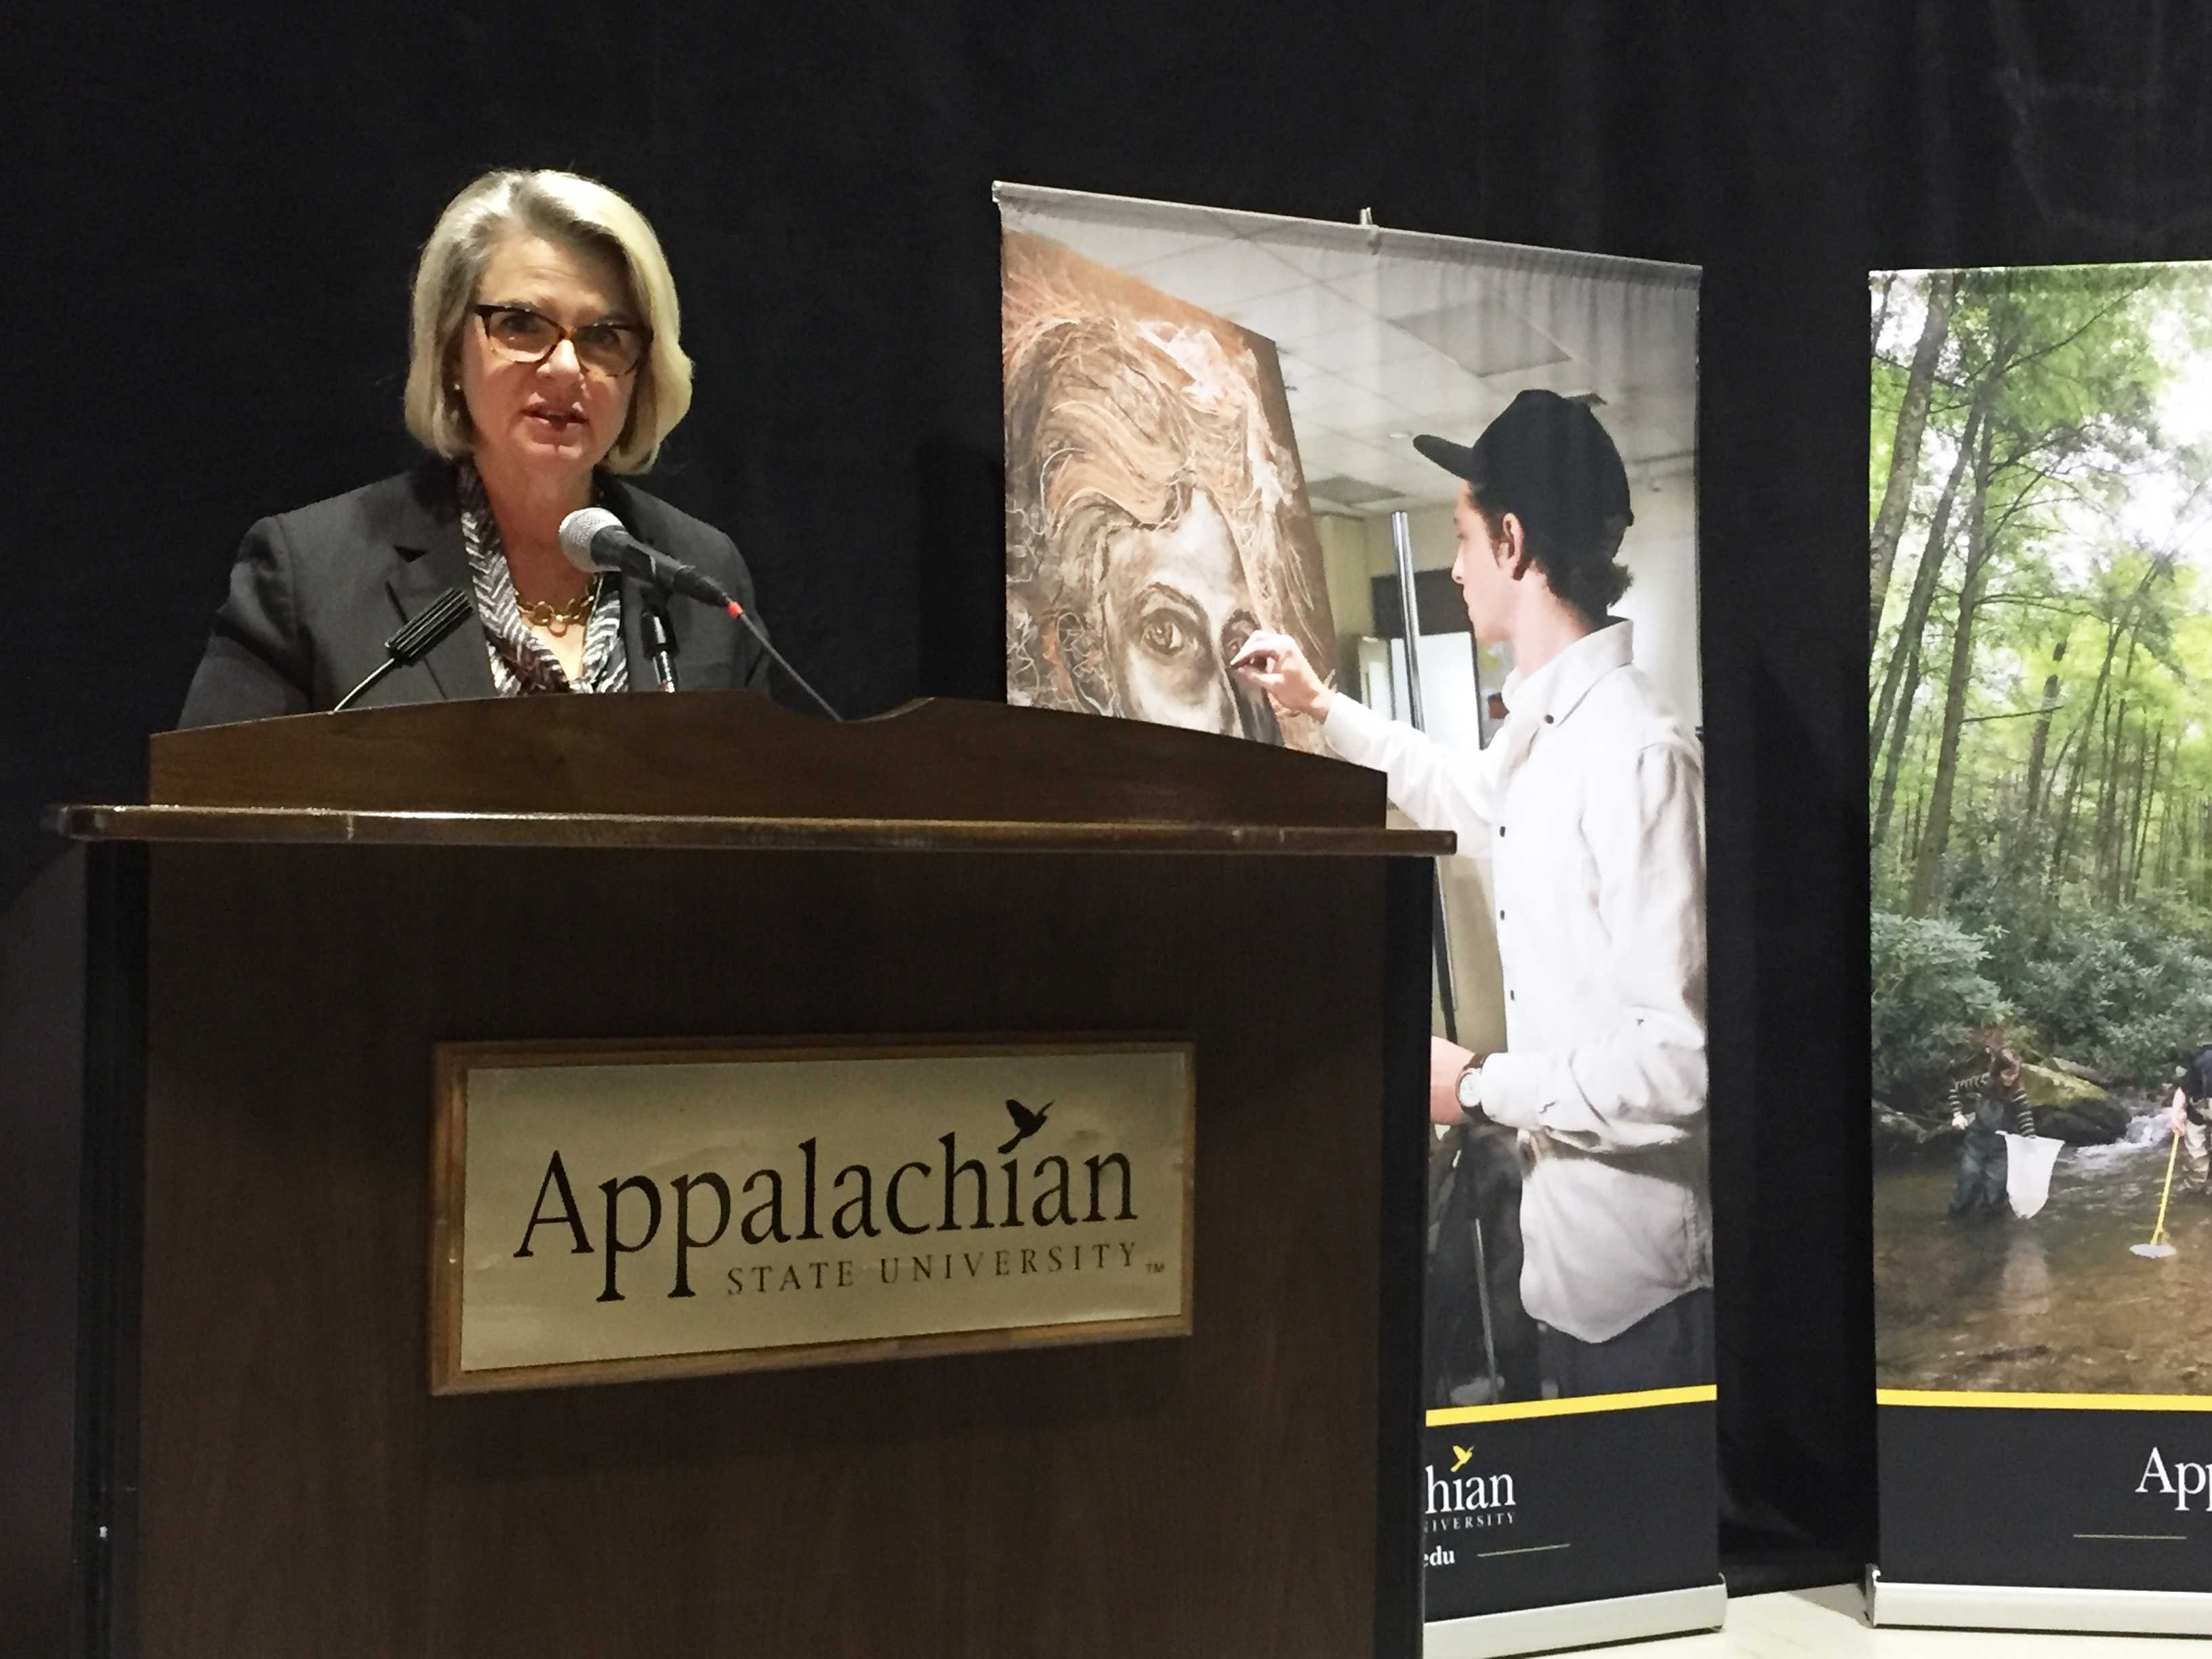 Margaret Spellings discusses Appalachian visit with the press